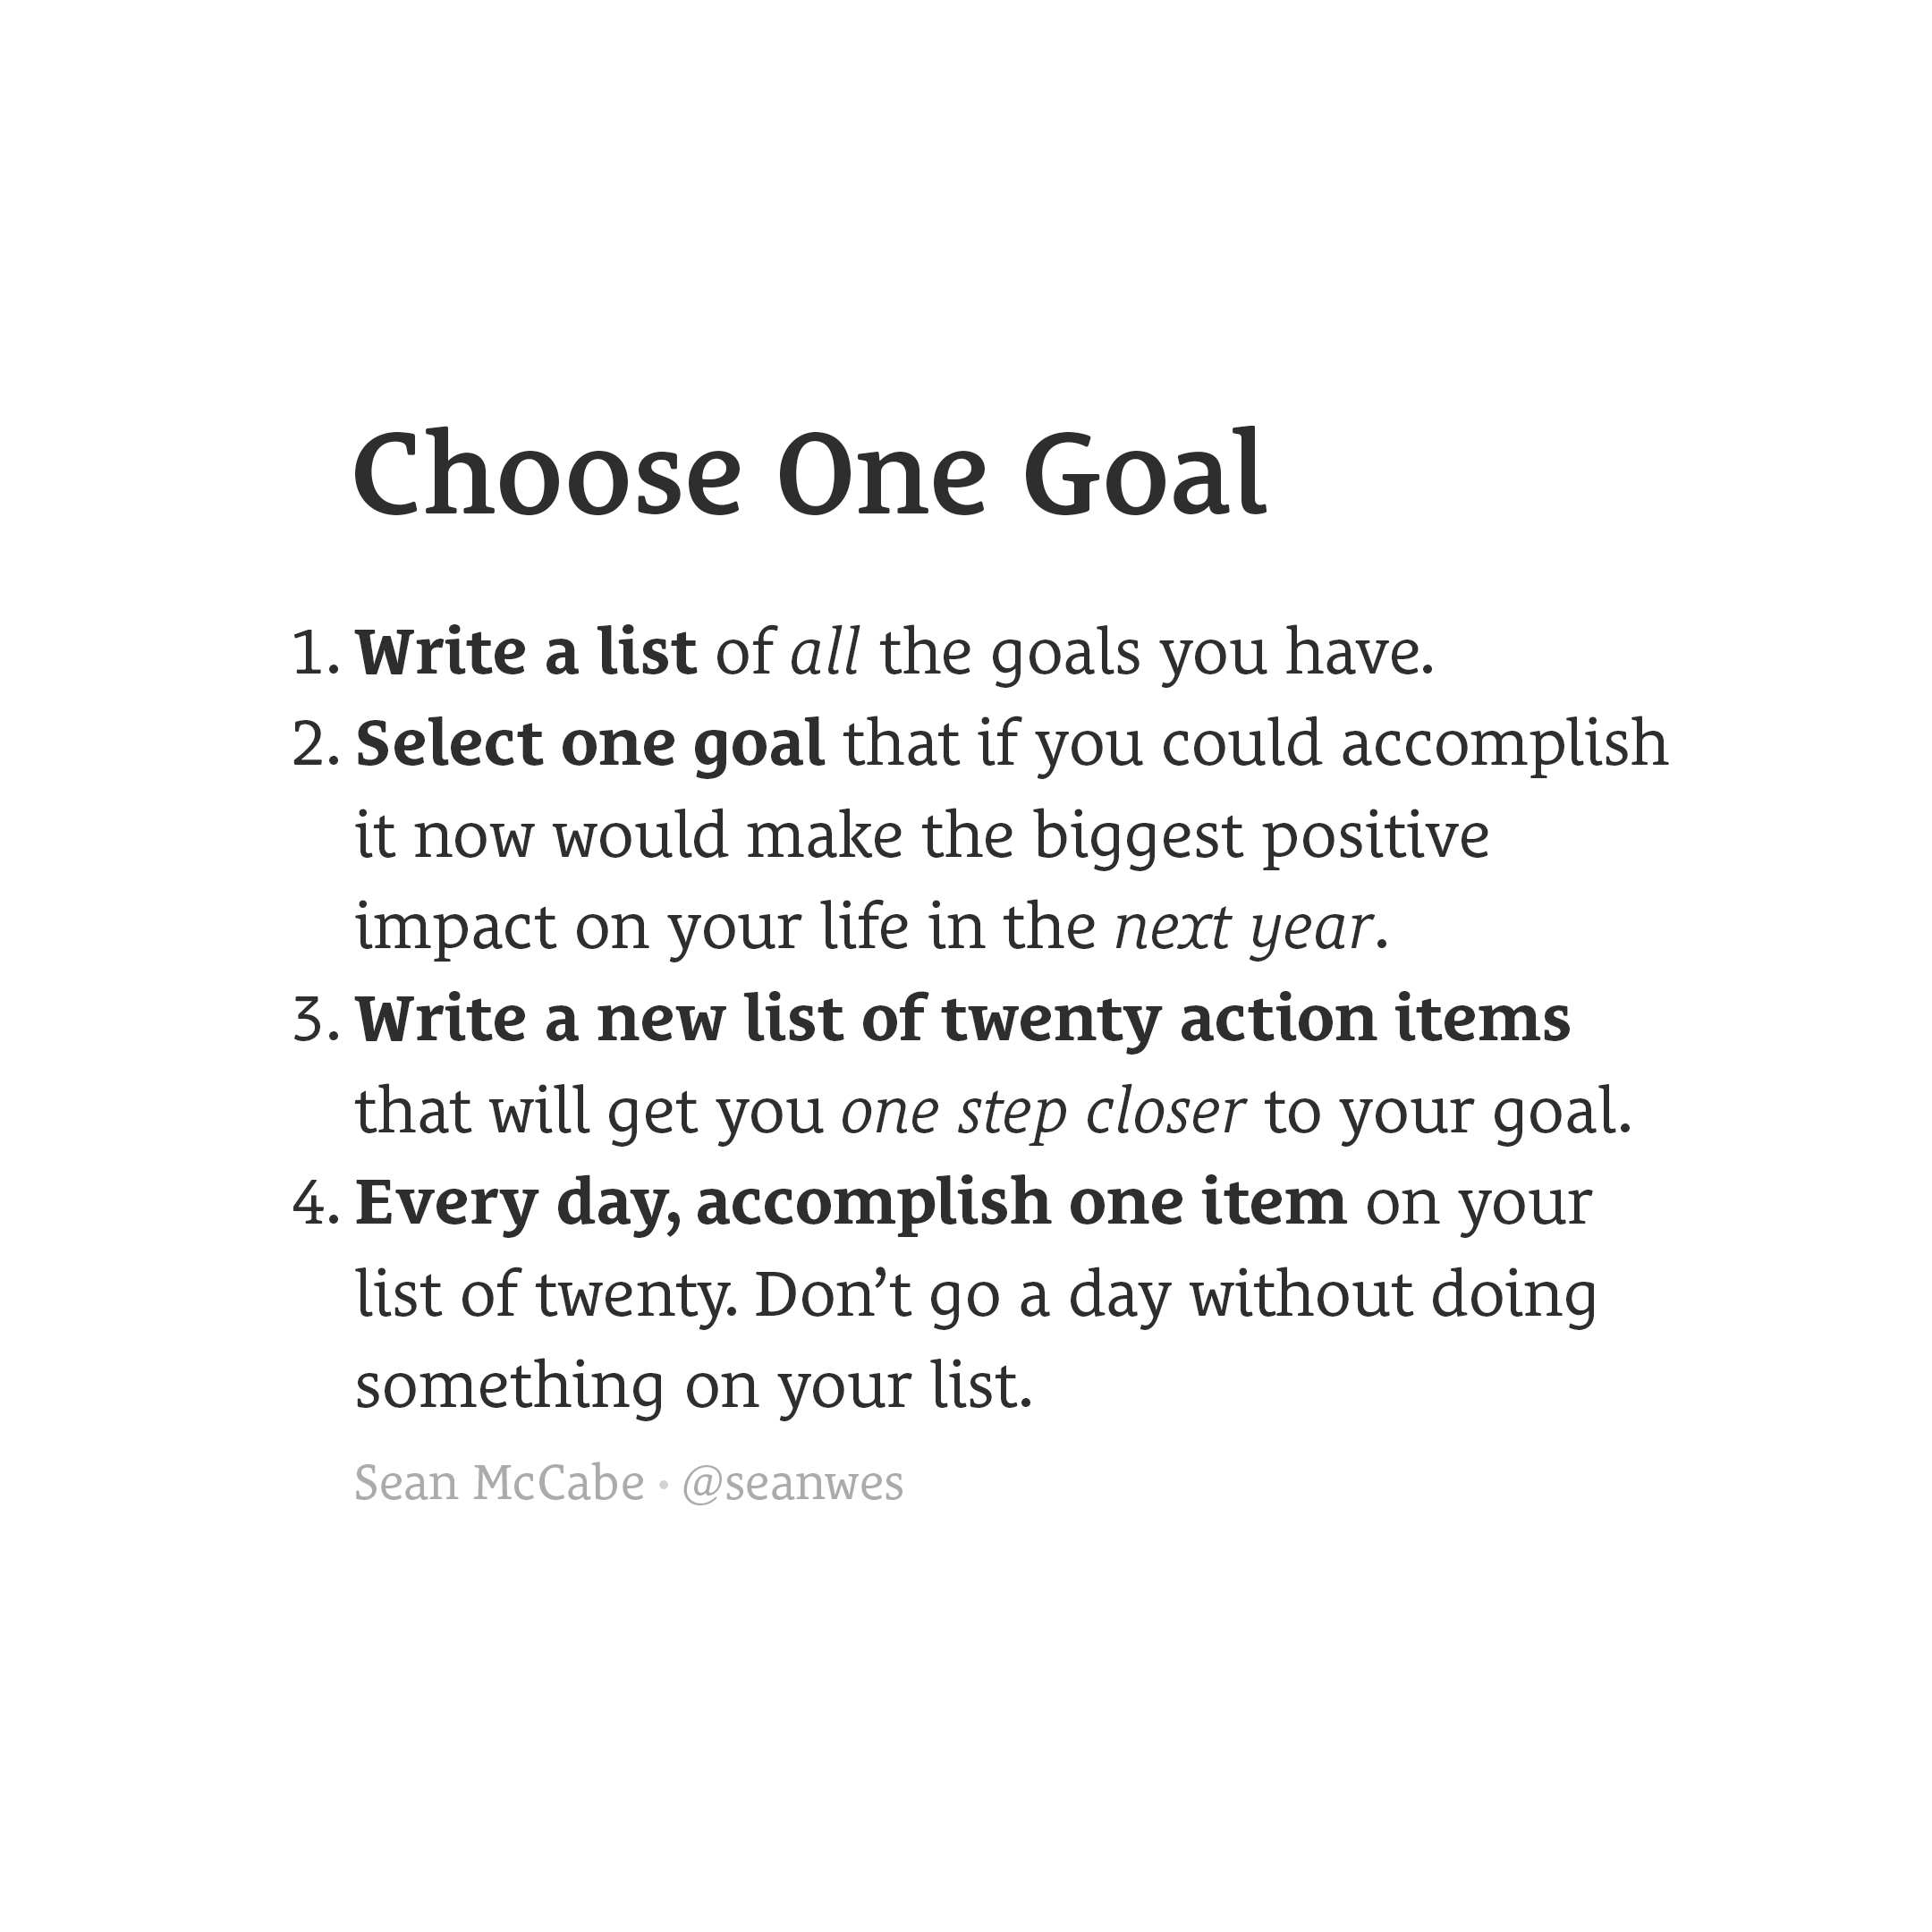 Choose one goal.